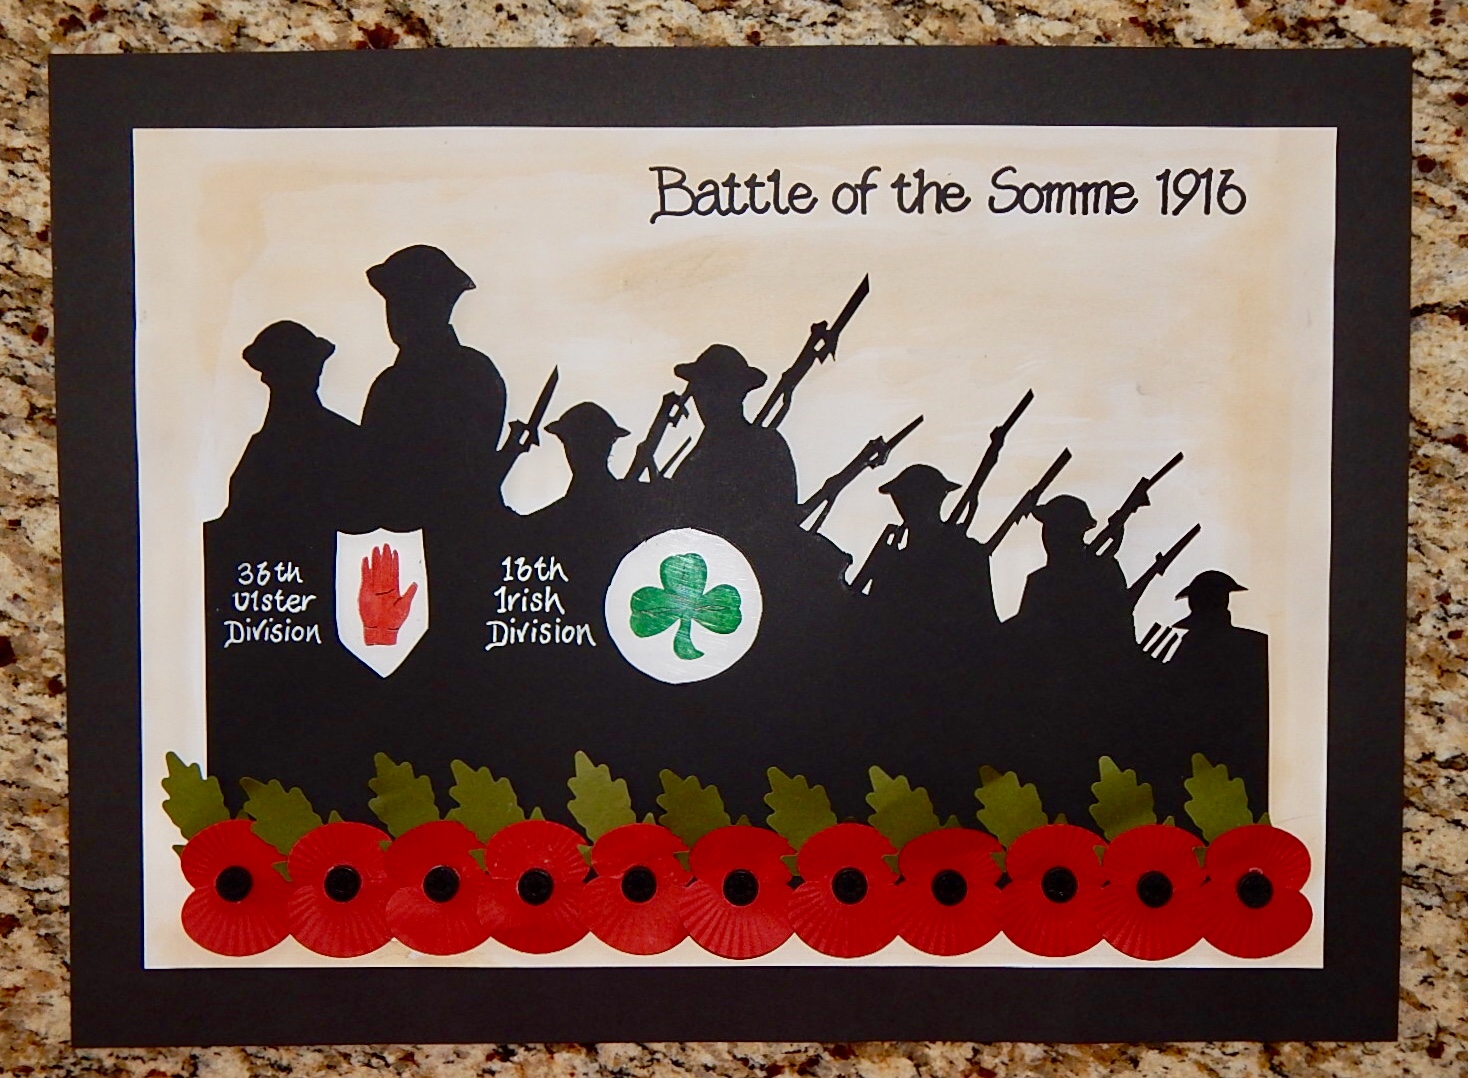 NI A1011 Winner, Battle of the Somme 1916.jpeg